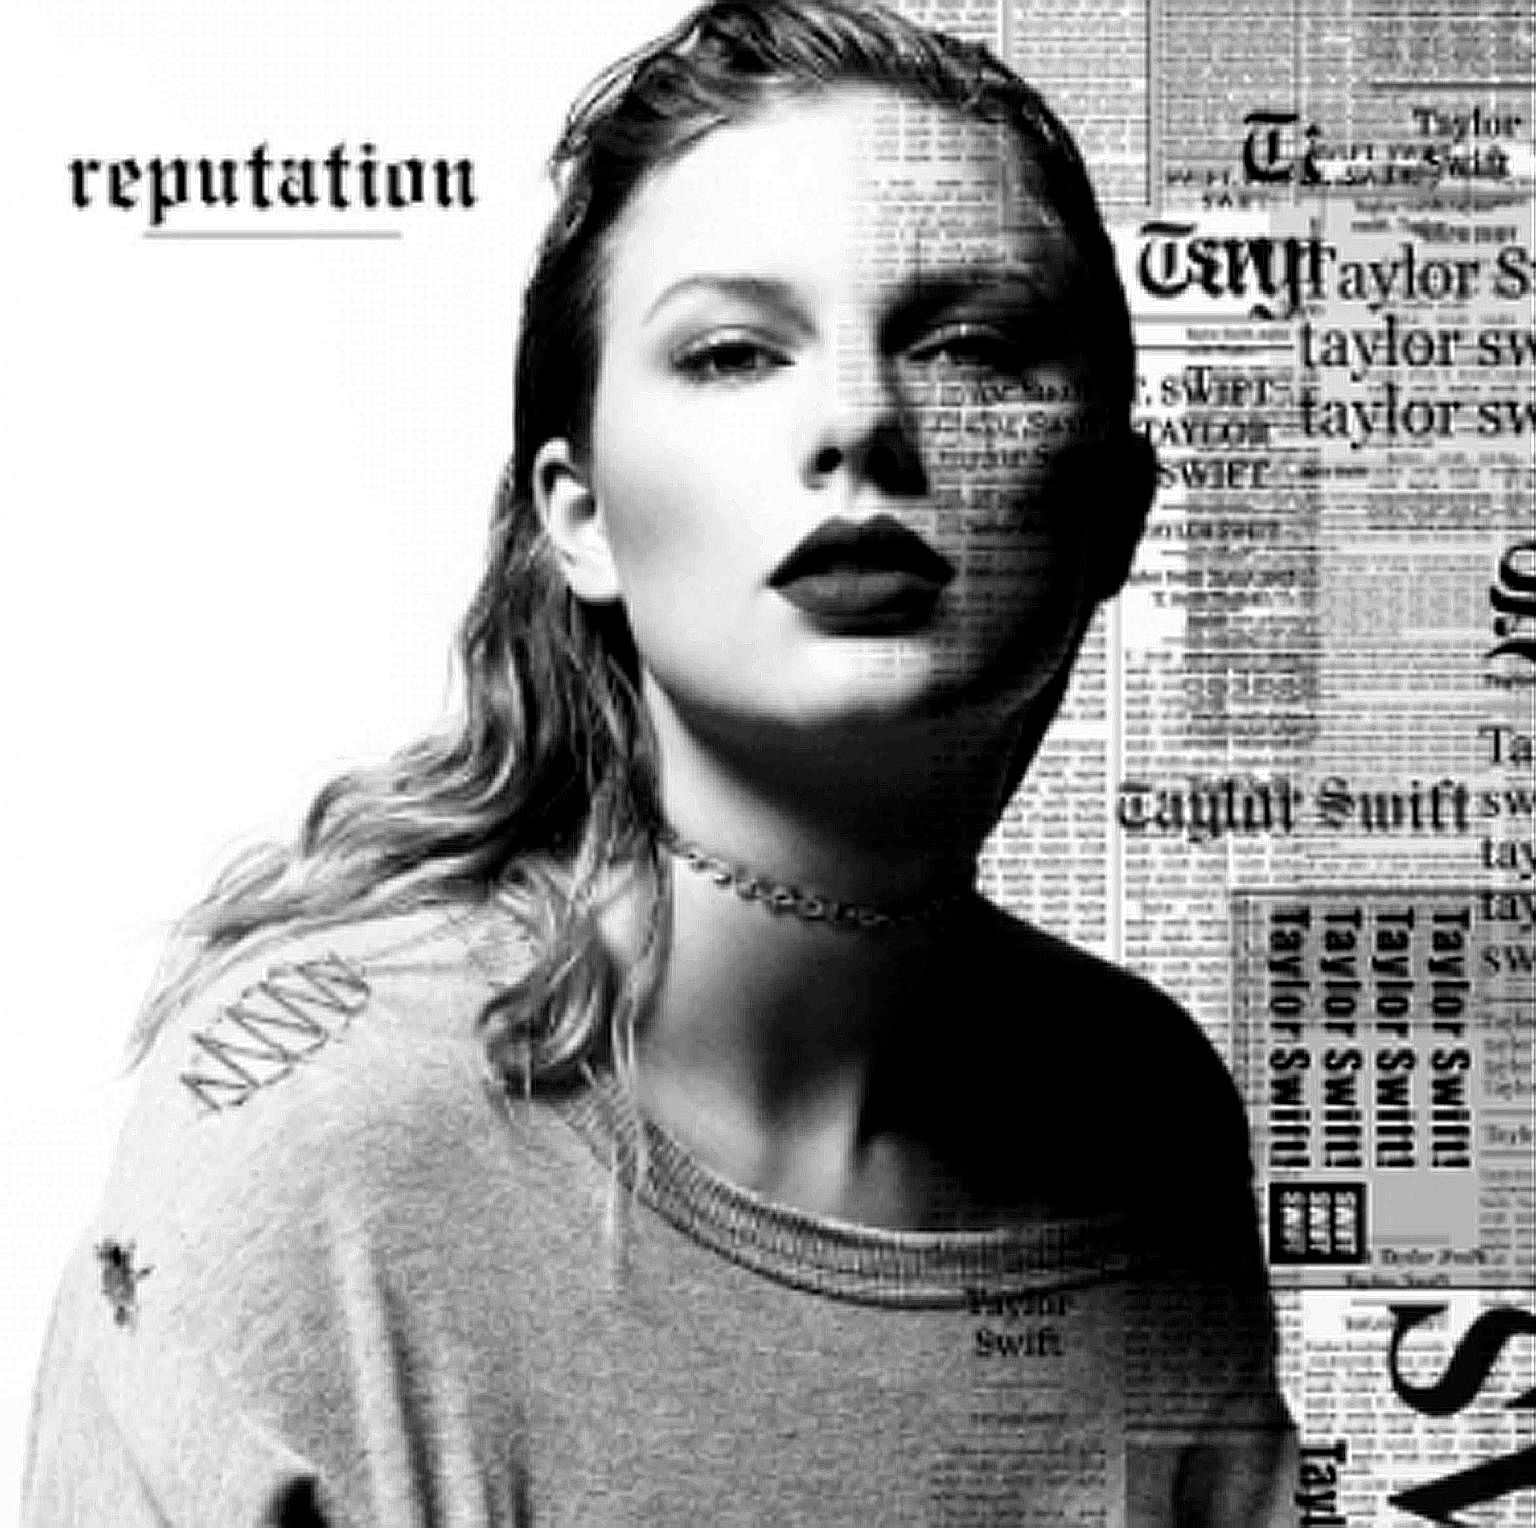 Reputation is the furthest Taylor Swift has strayed from her country-pop beginnings.